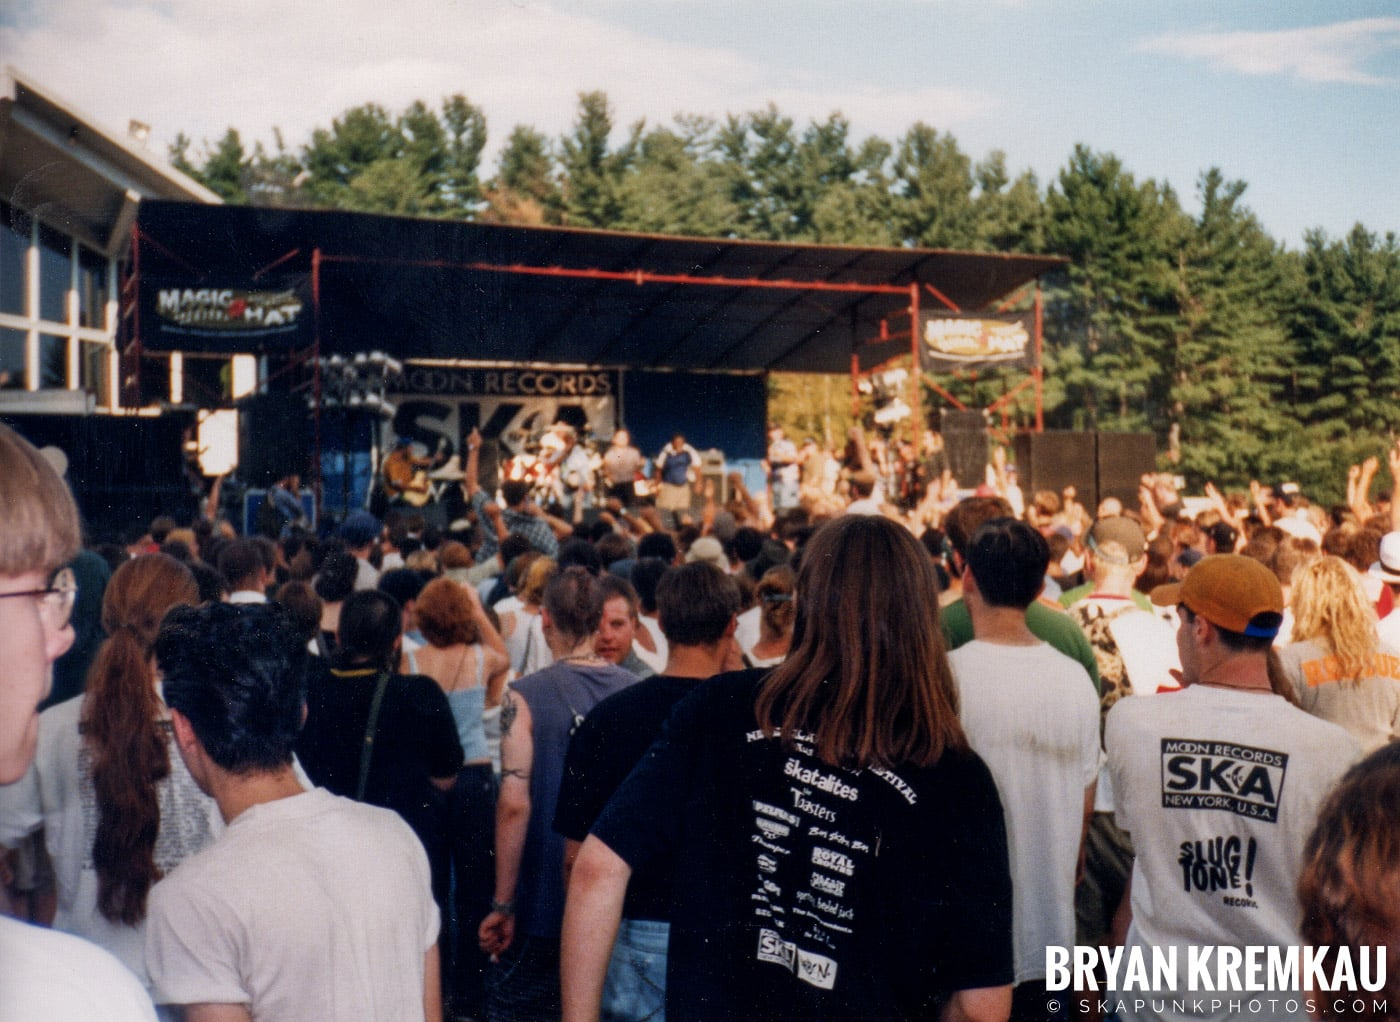 Crowd Shots @ New England Ska Fest 98, Westford, MA - 8.22.98 (13)